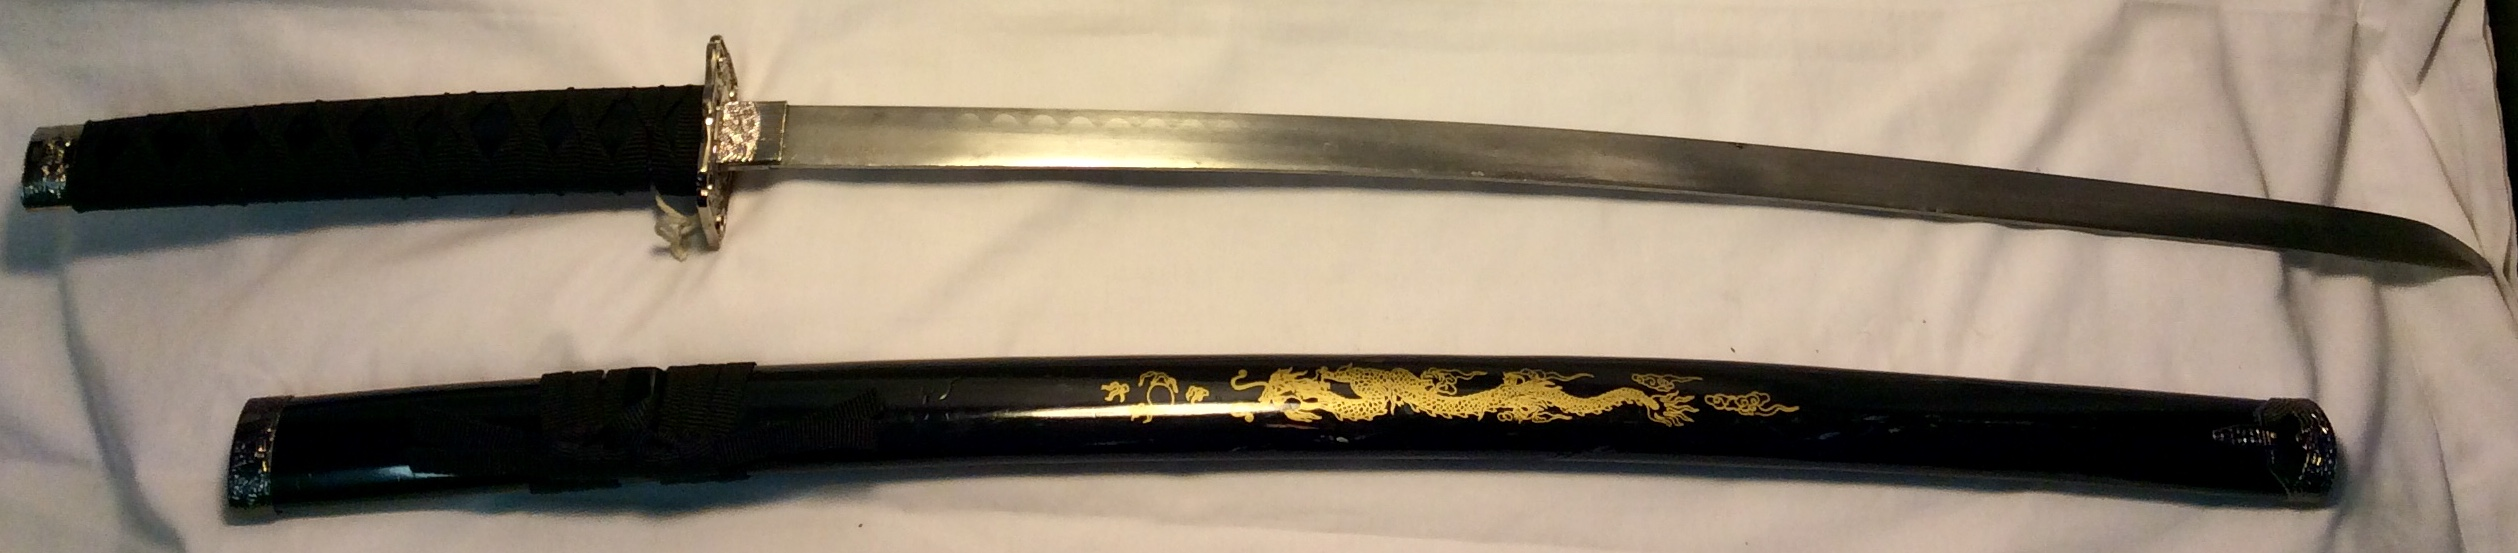 Wakizashi with black saya/ dragon